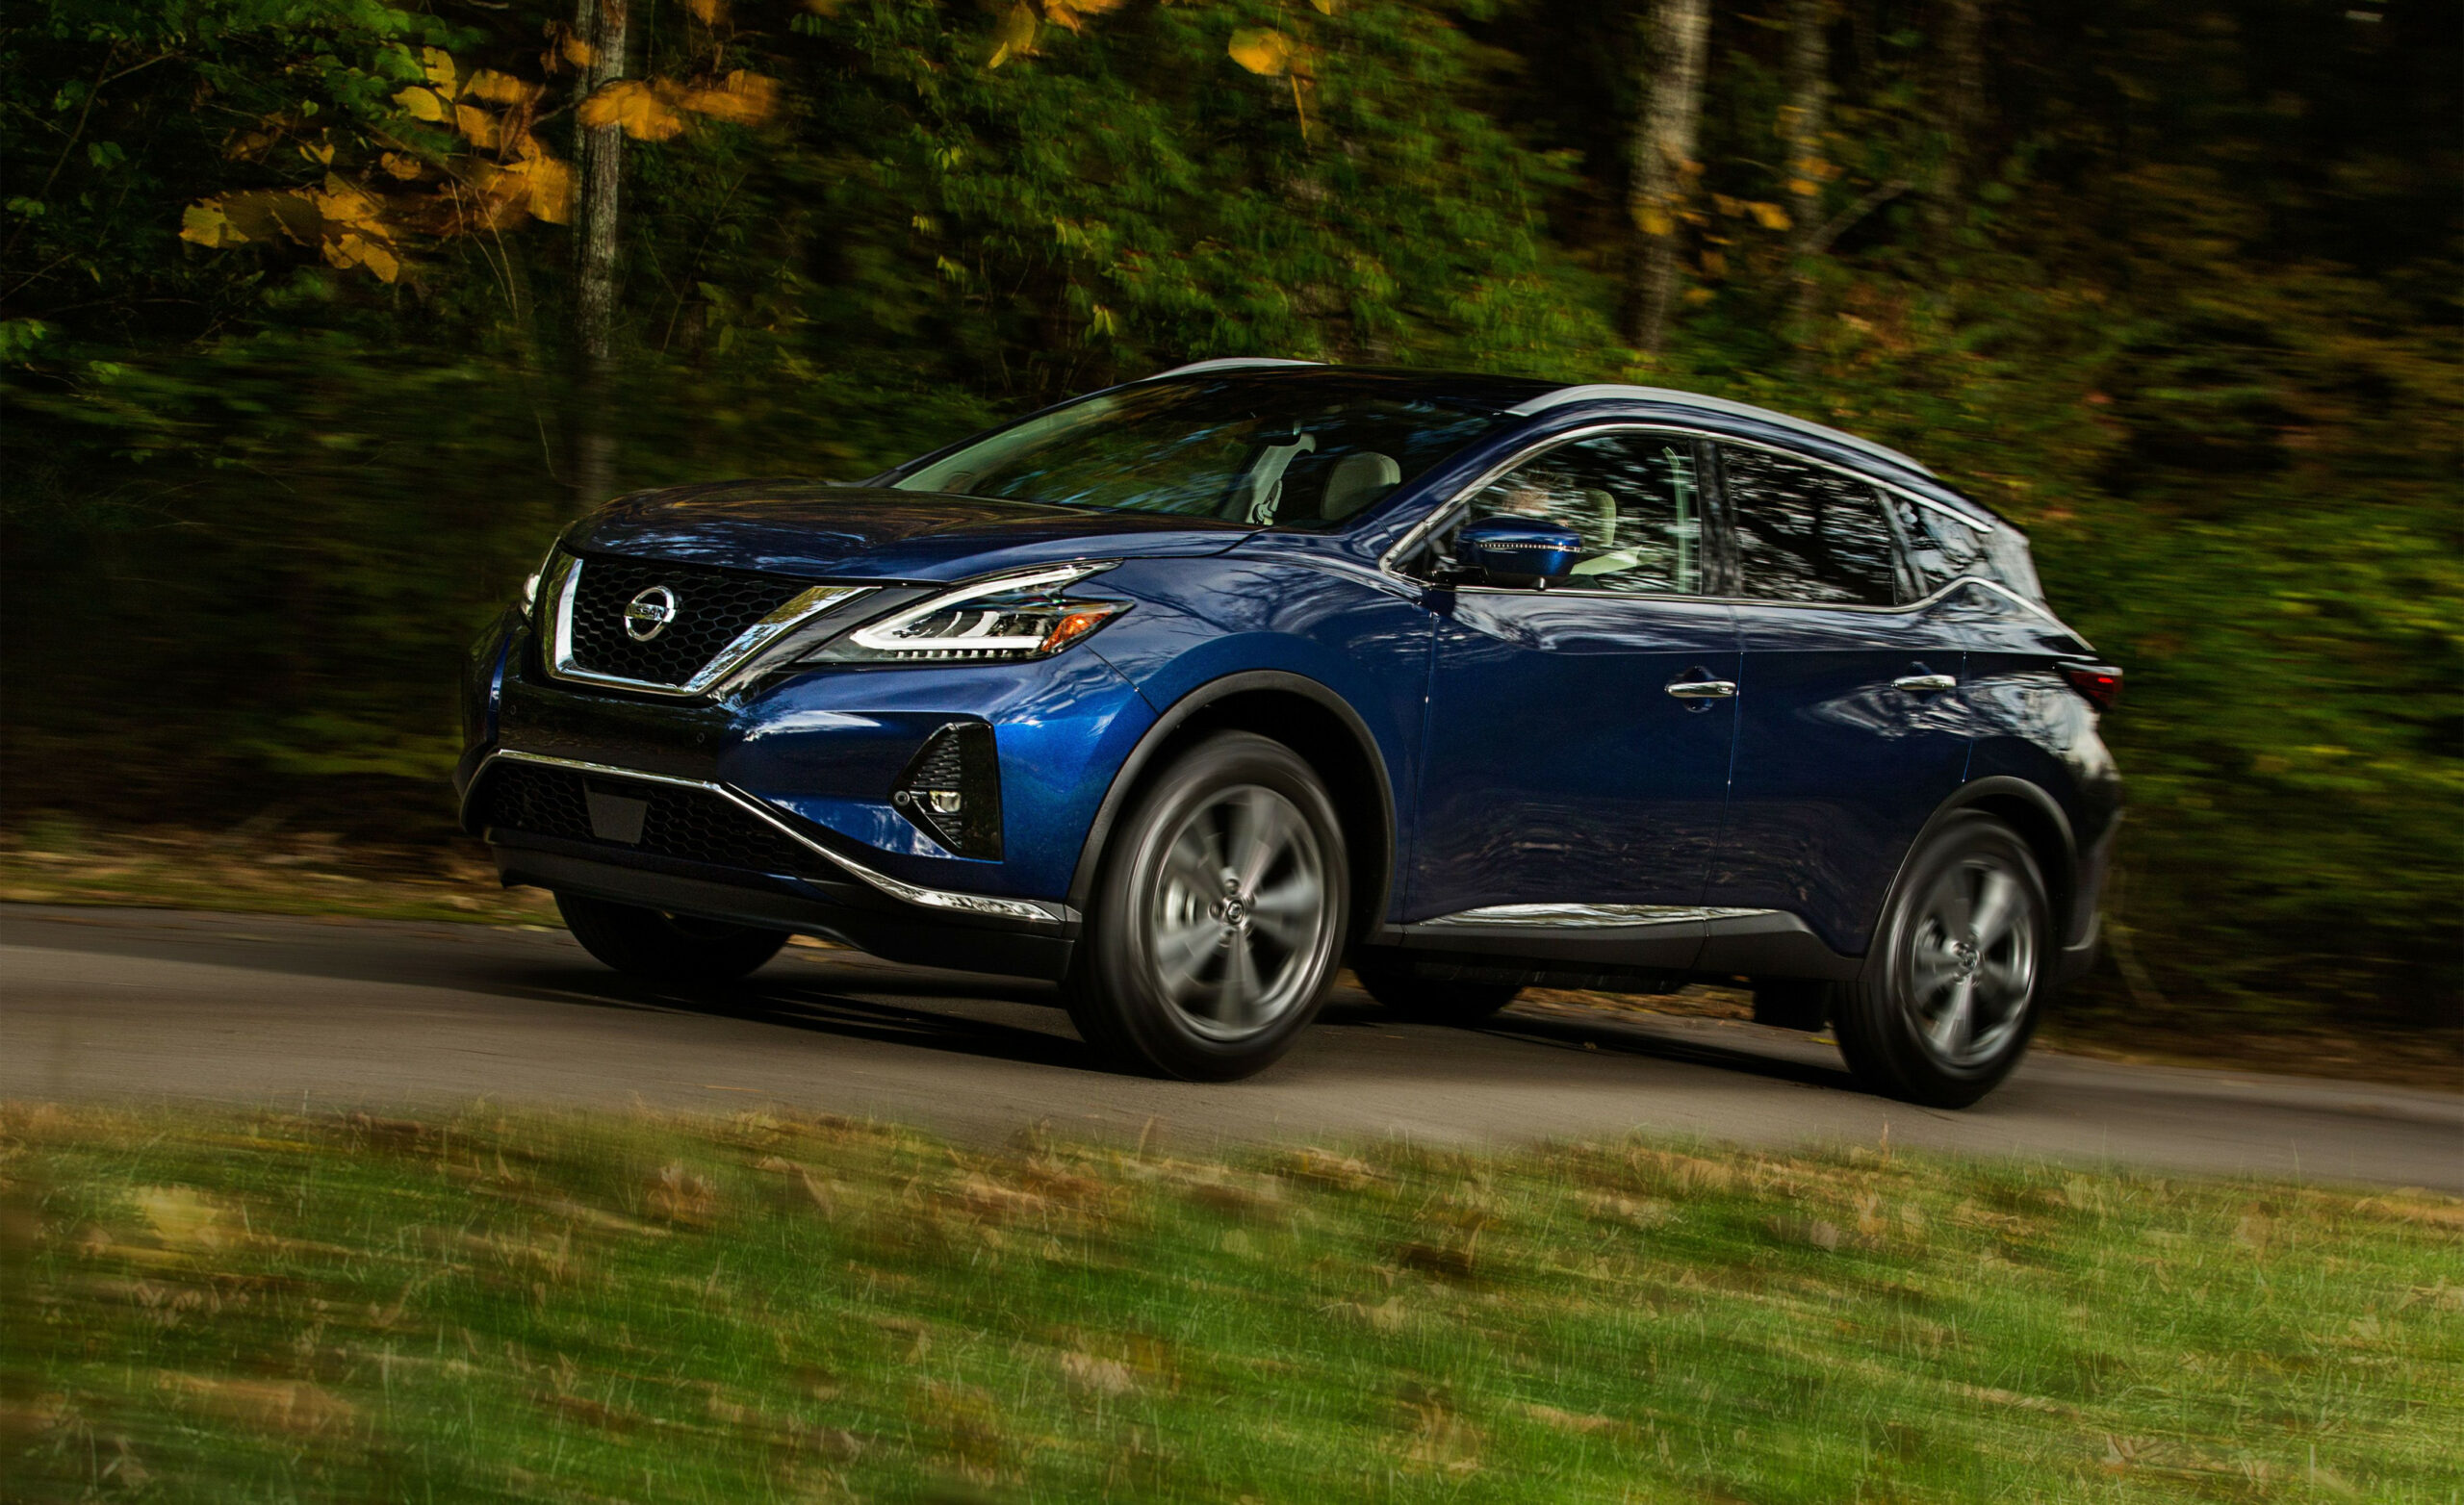 Redesign and Concept 2022 Nissan Murano